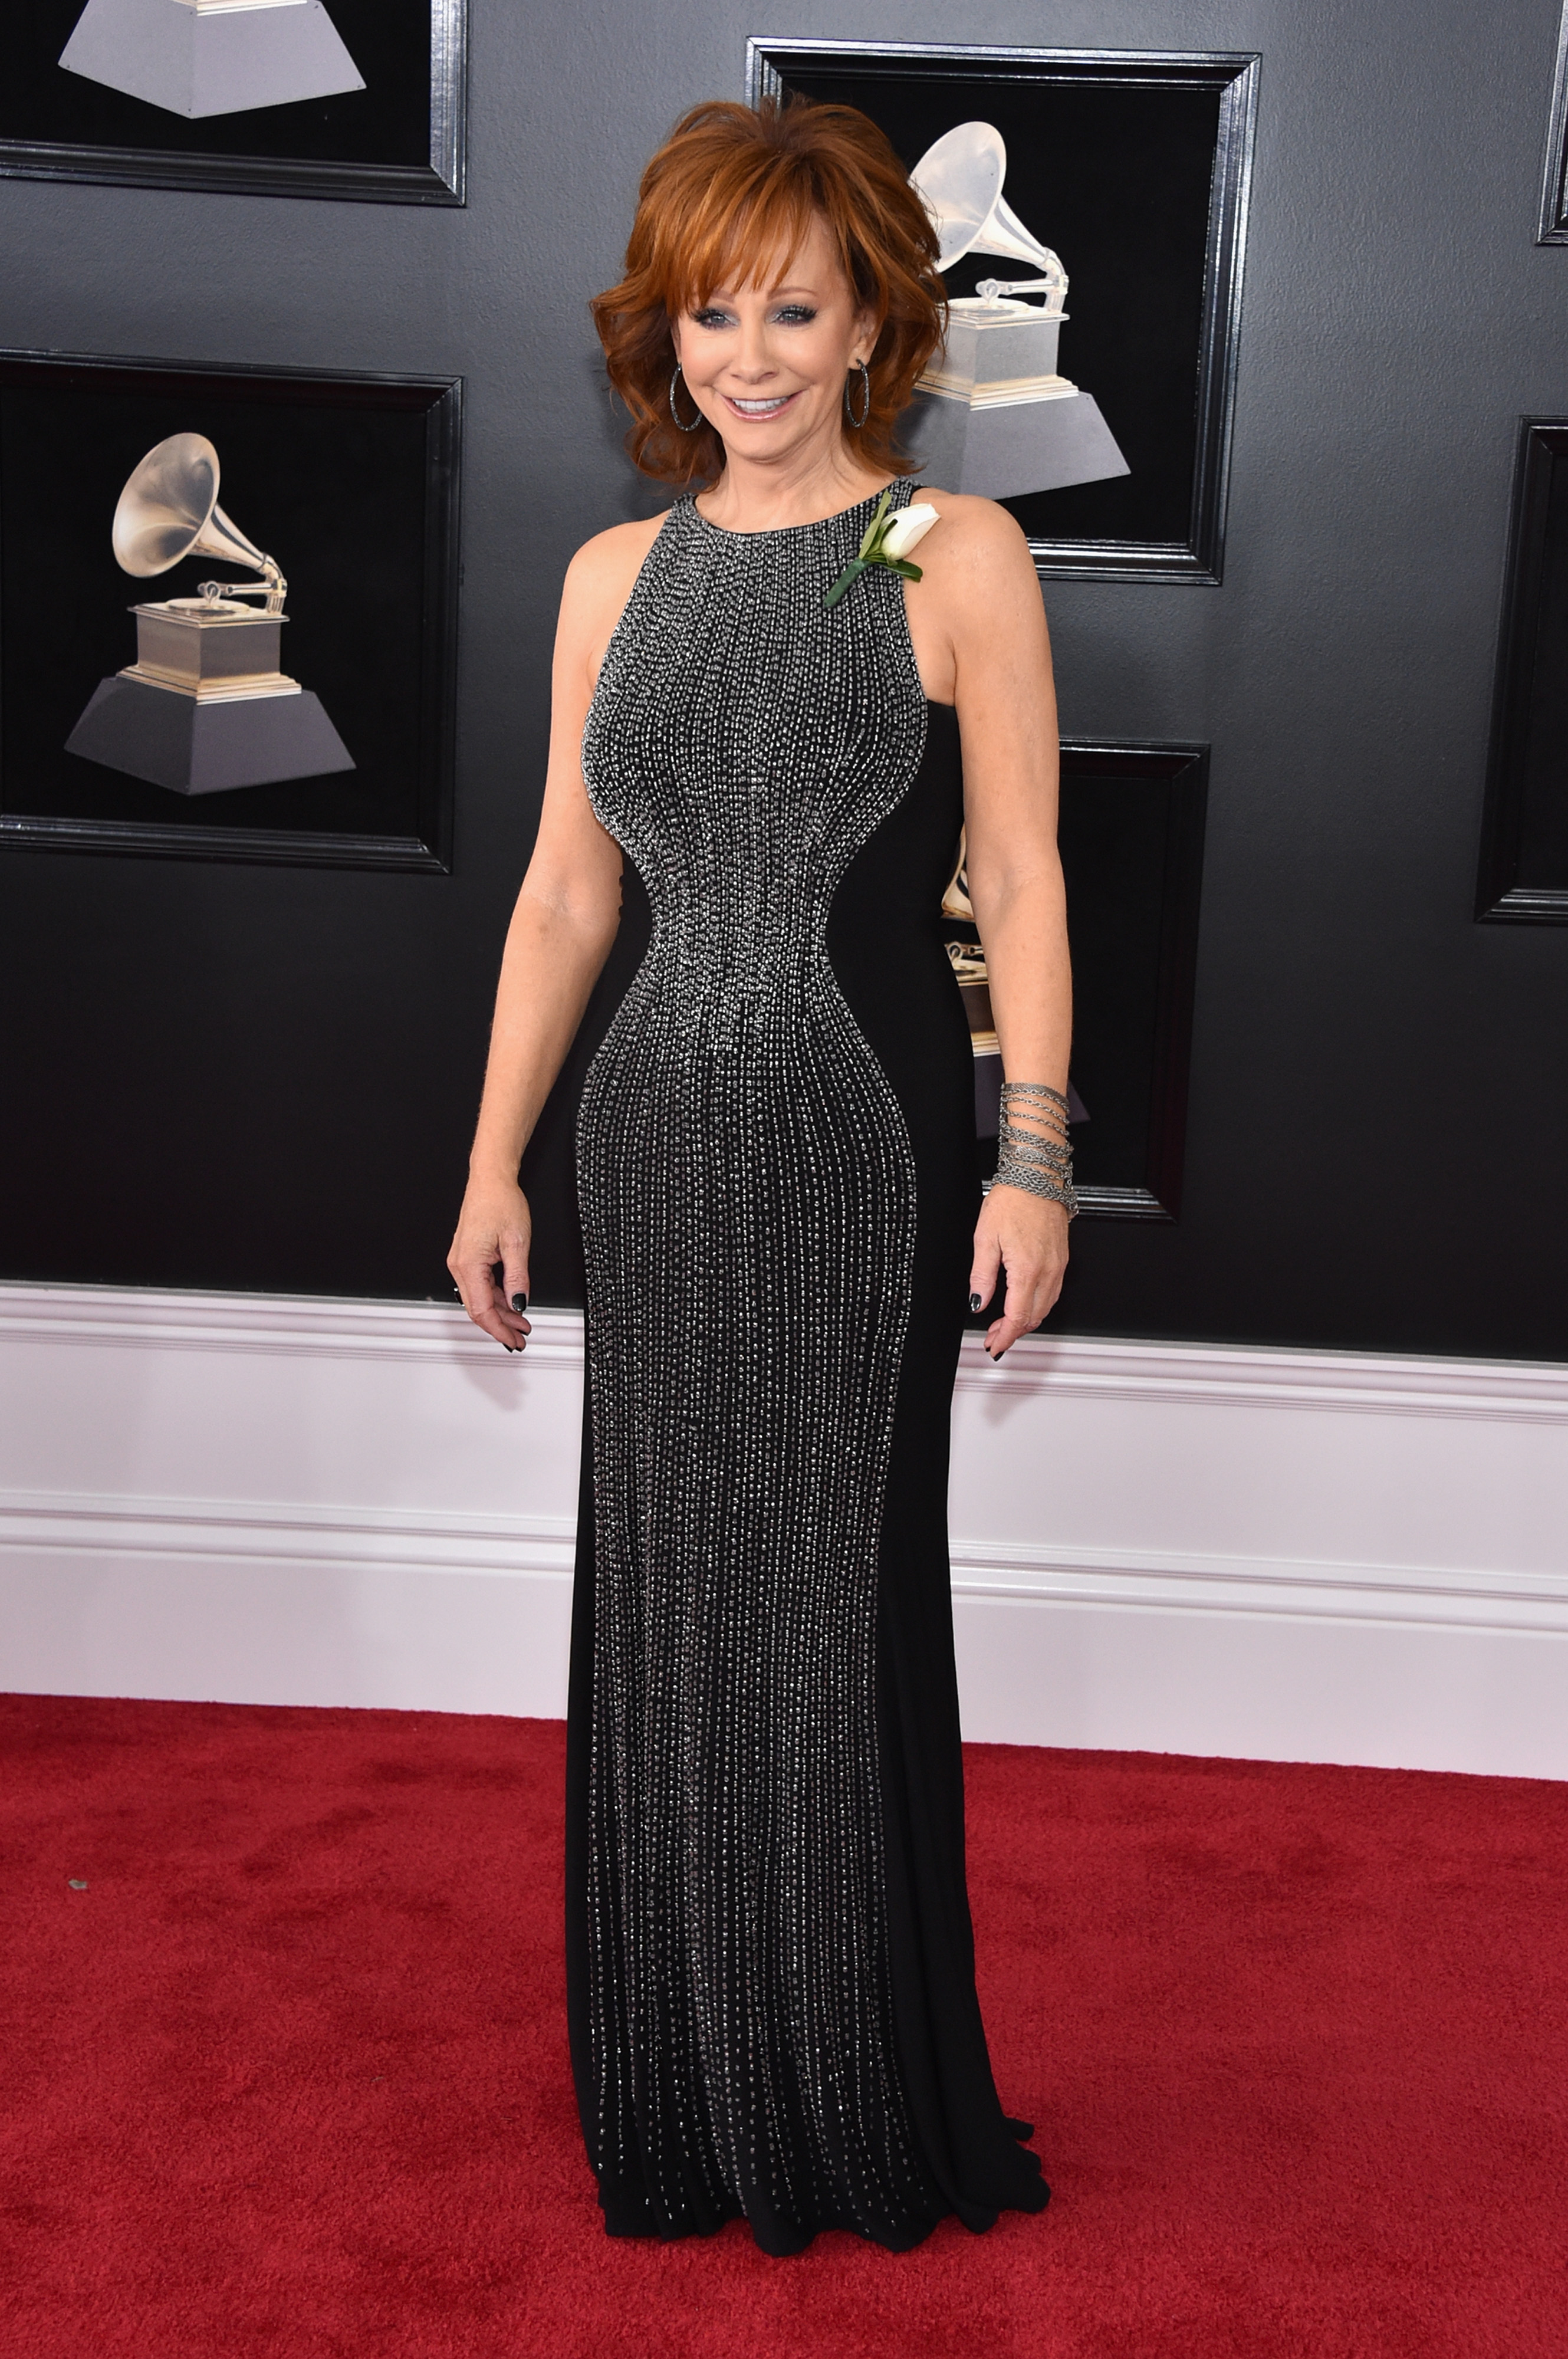 Reba-McEntire-Will-Host-The-2018-ACM-Awards-For-15th-Time